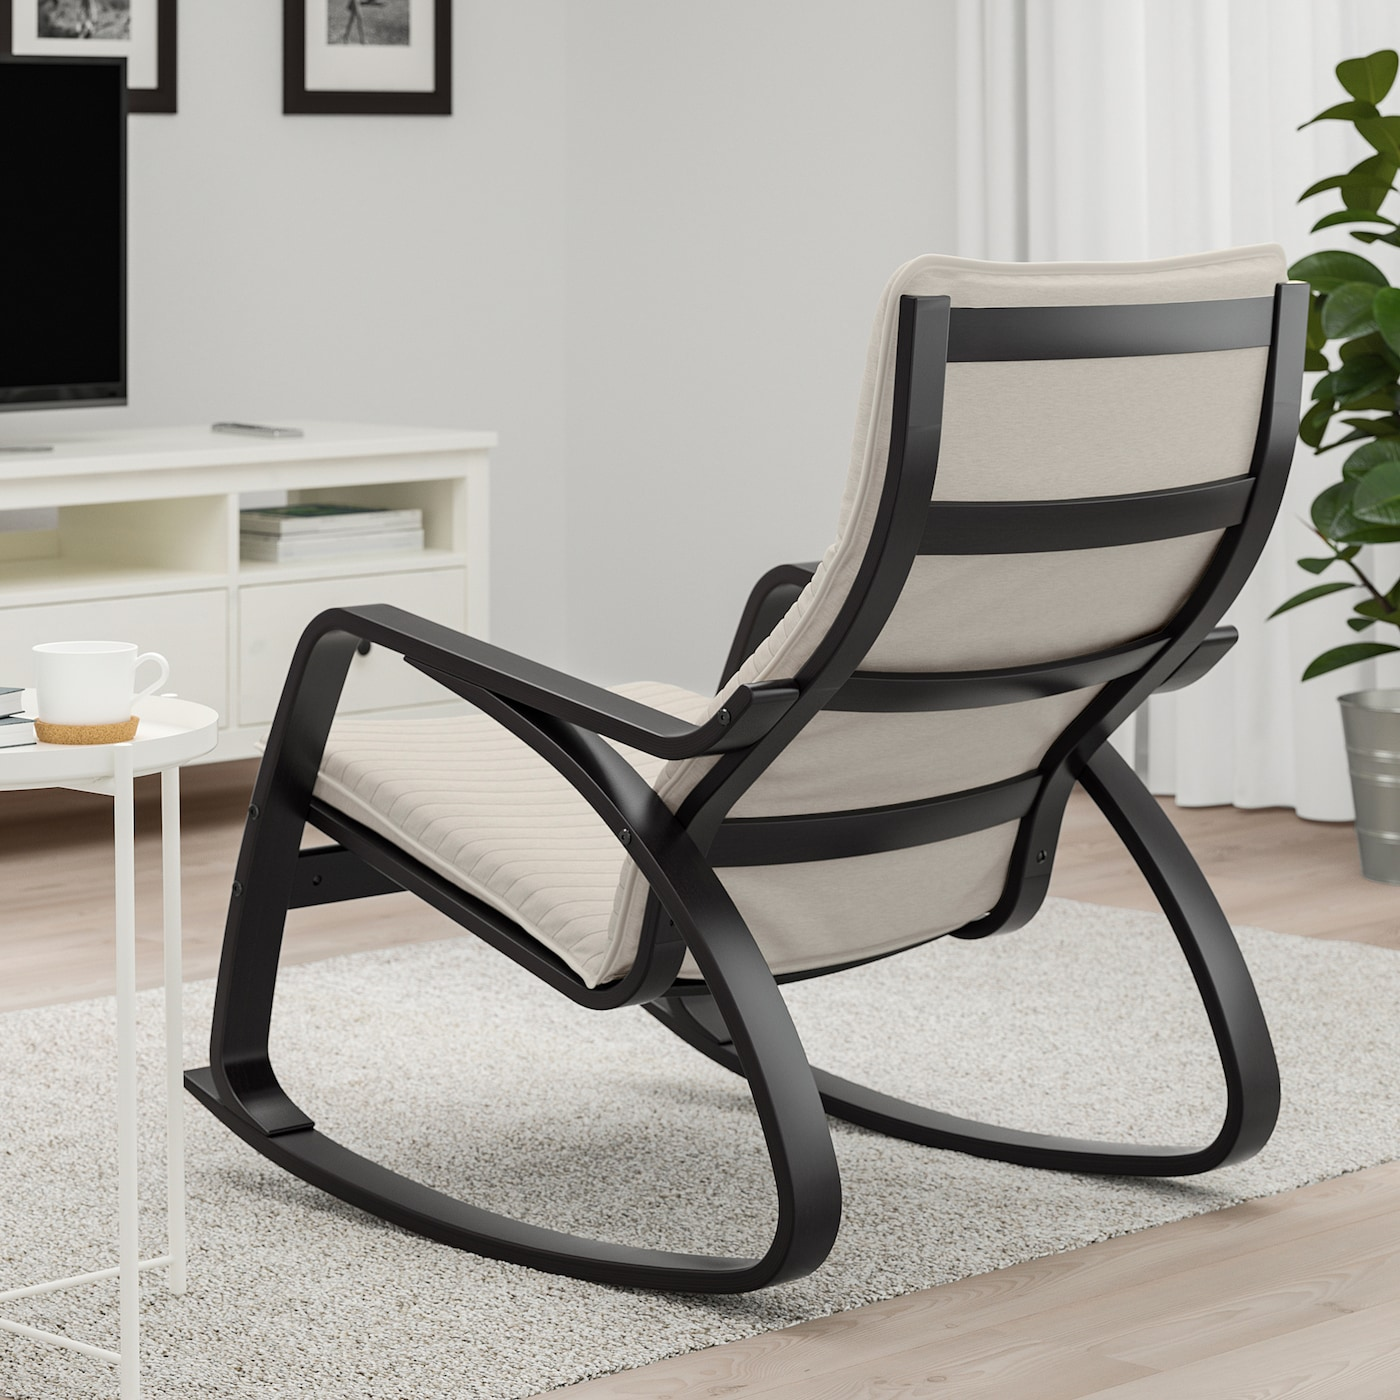 POÄNG Rocking chair black brown, Knisa light beige